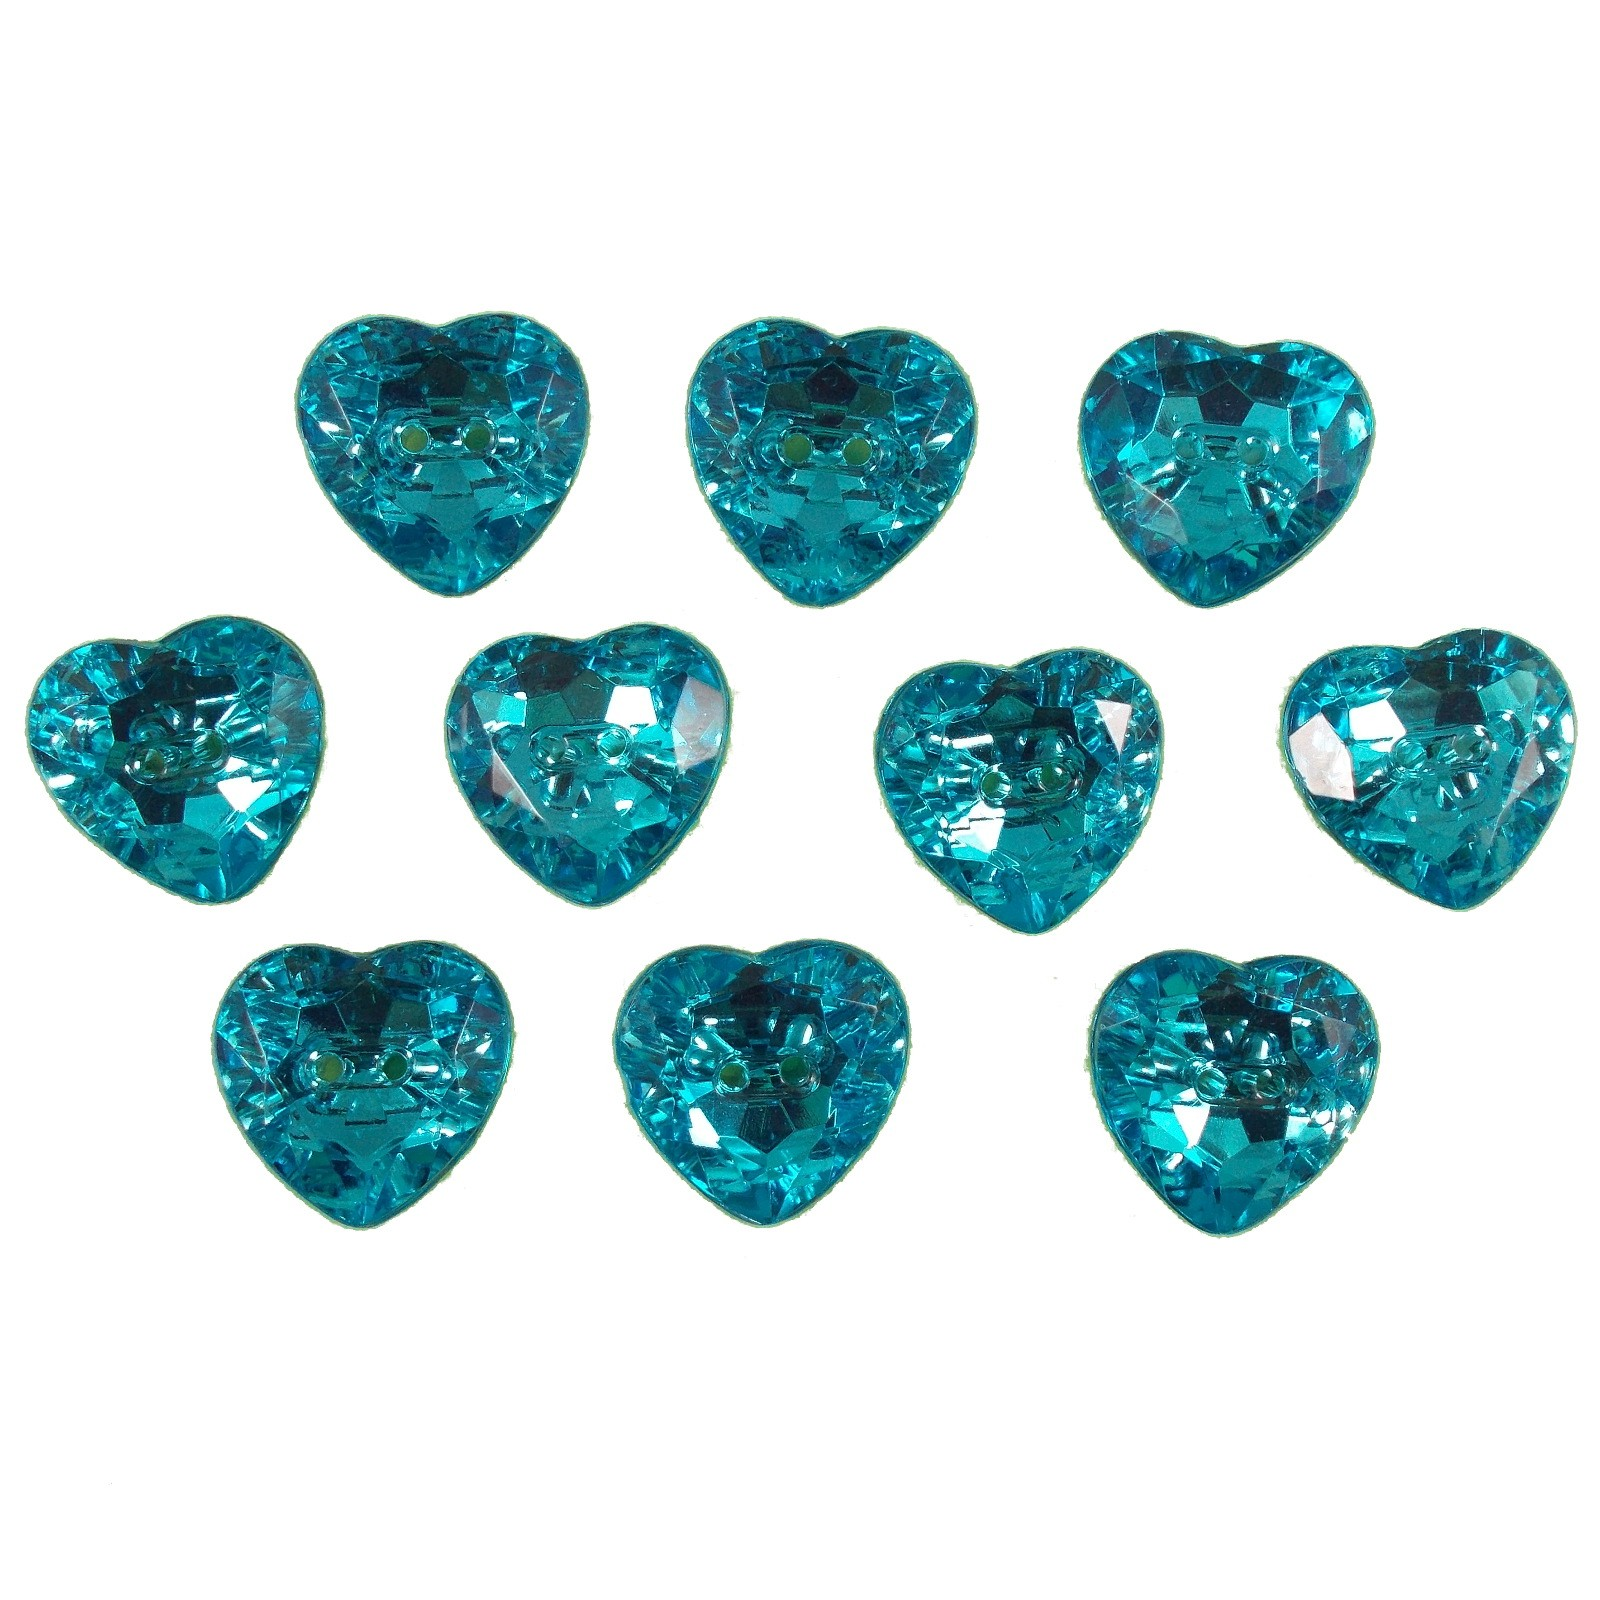 Acrylic Crystal Effect Heart Shape Buttons 32mm Turquoise Pack of 10